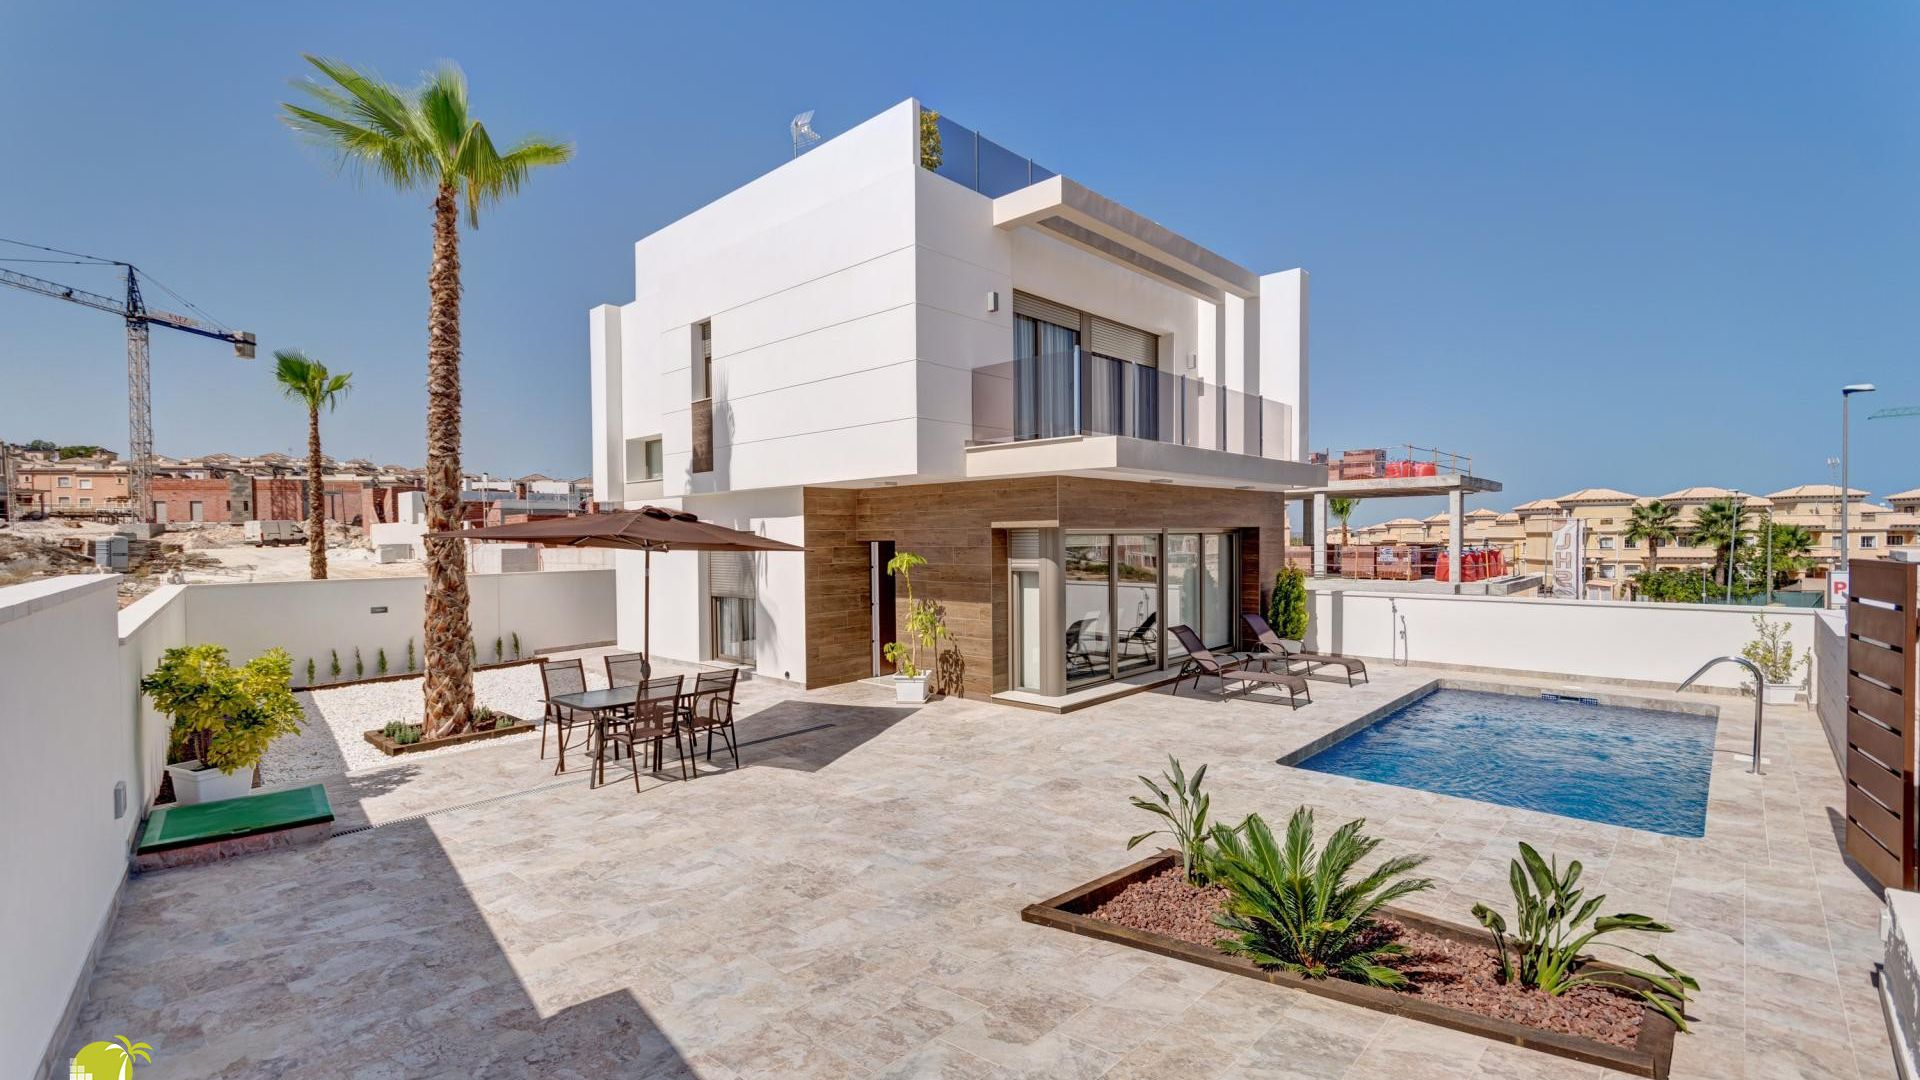 Villa in Orihuela Costa, empty, Spain